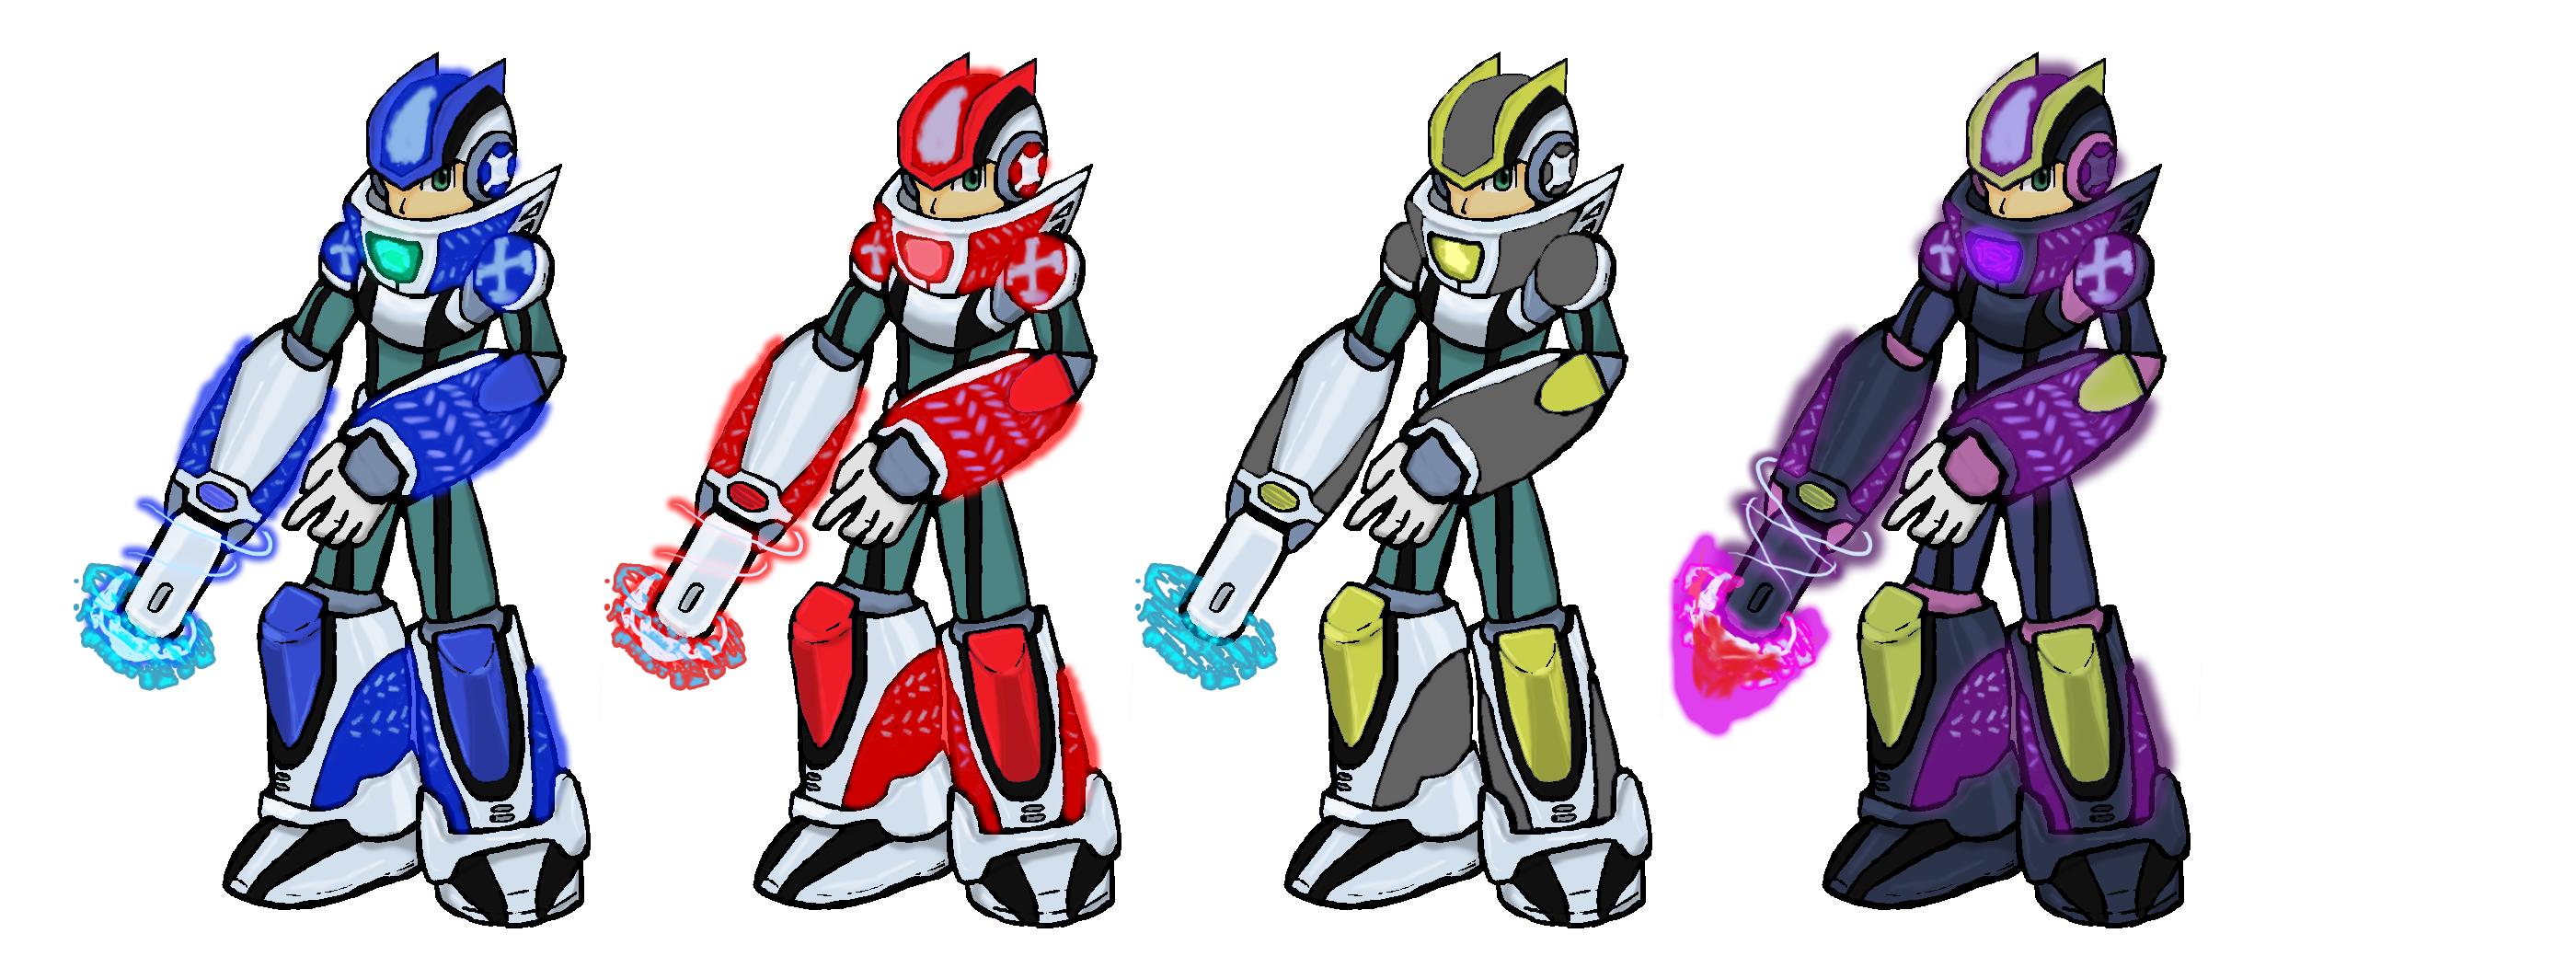 Drawing collages fan art. Megaman x armor th